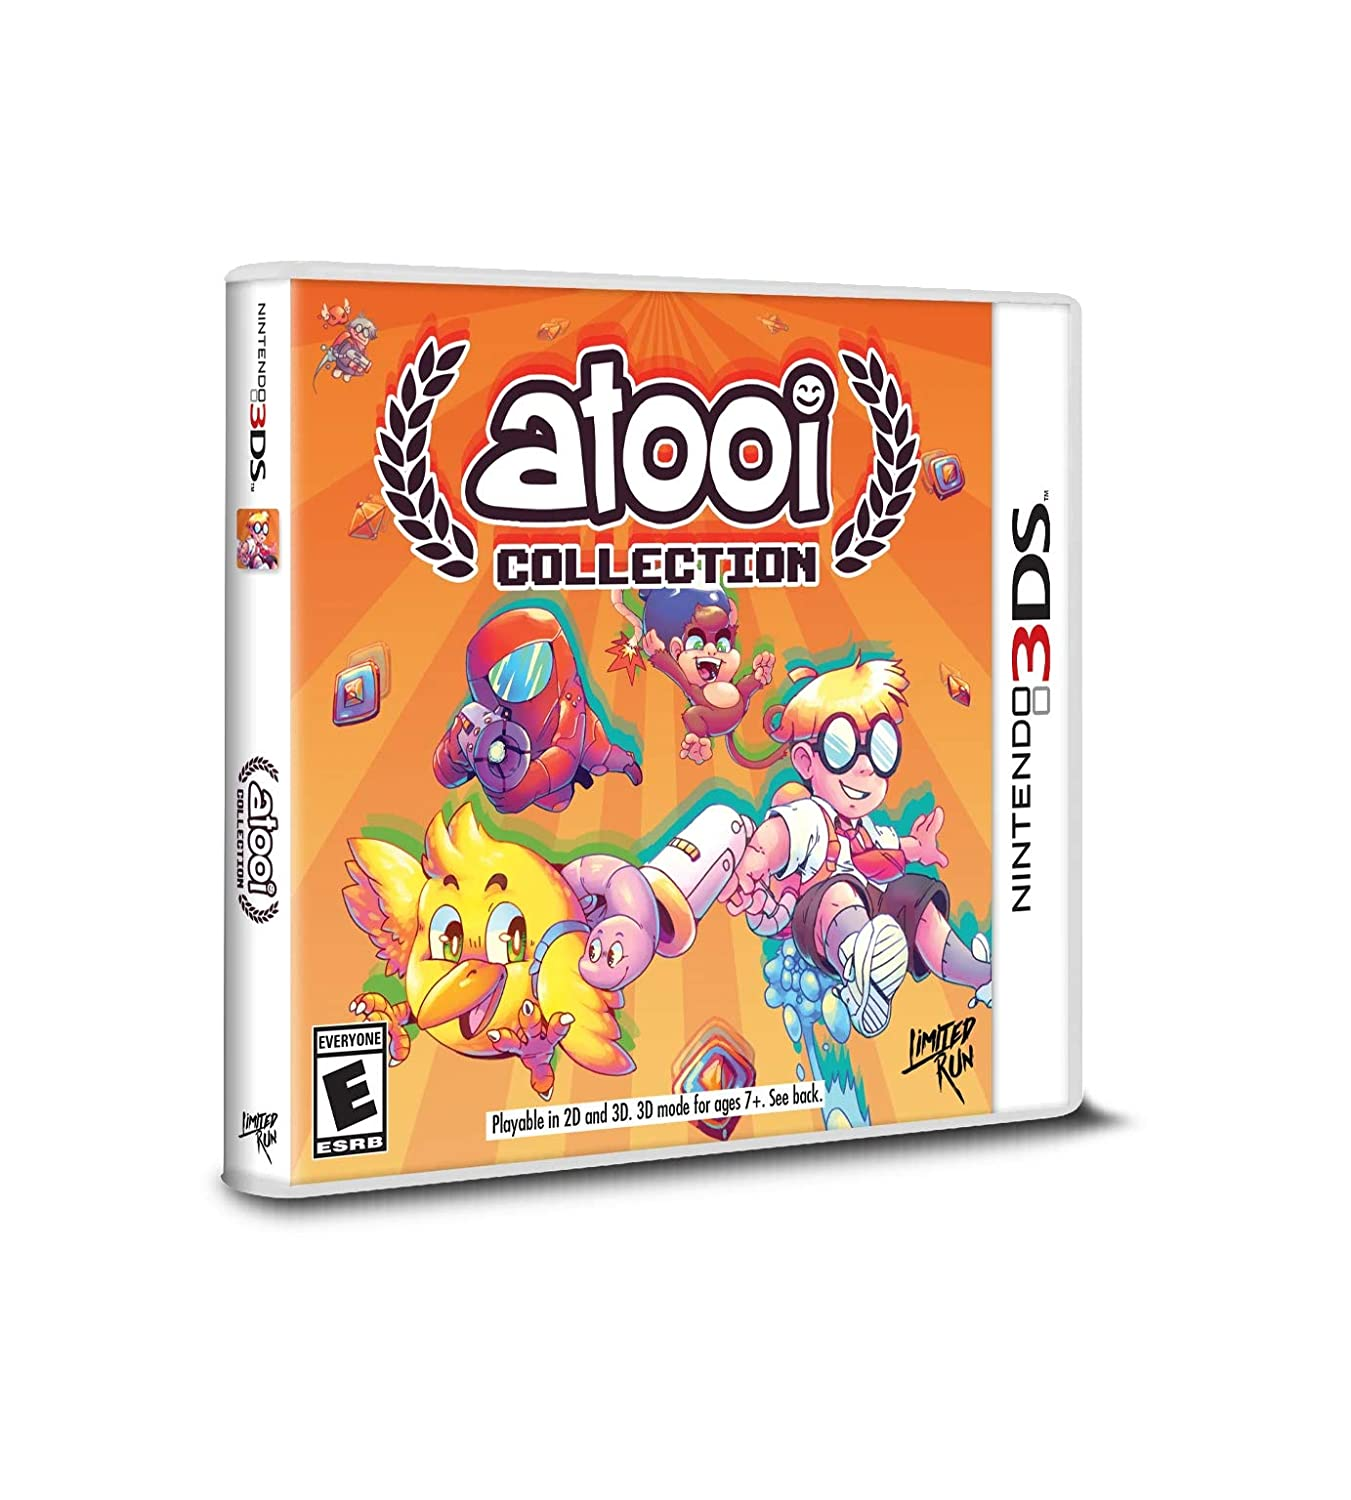 Atooi Collection - Nintendo Max 77% Dealing full price reduction OFF 3DS